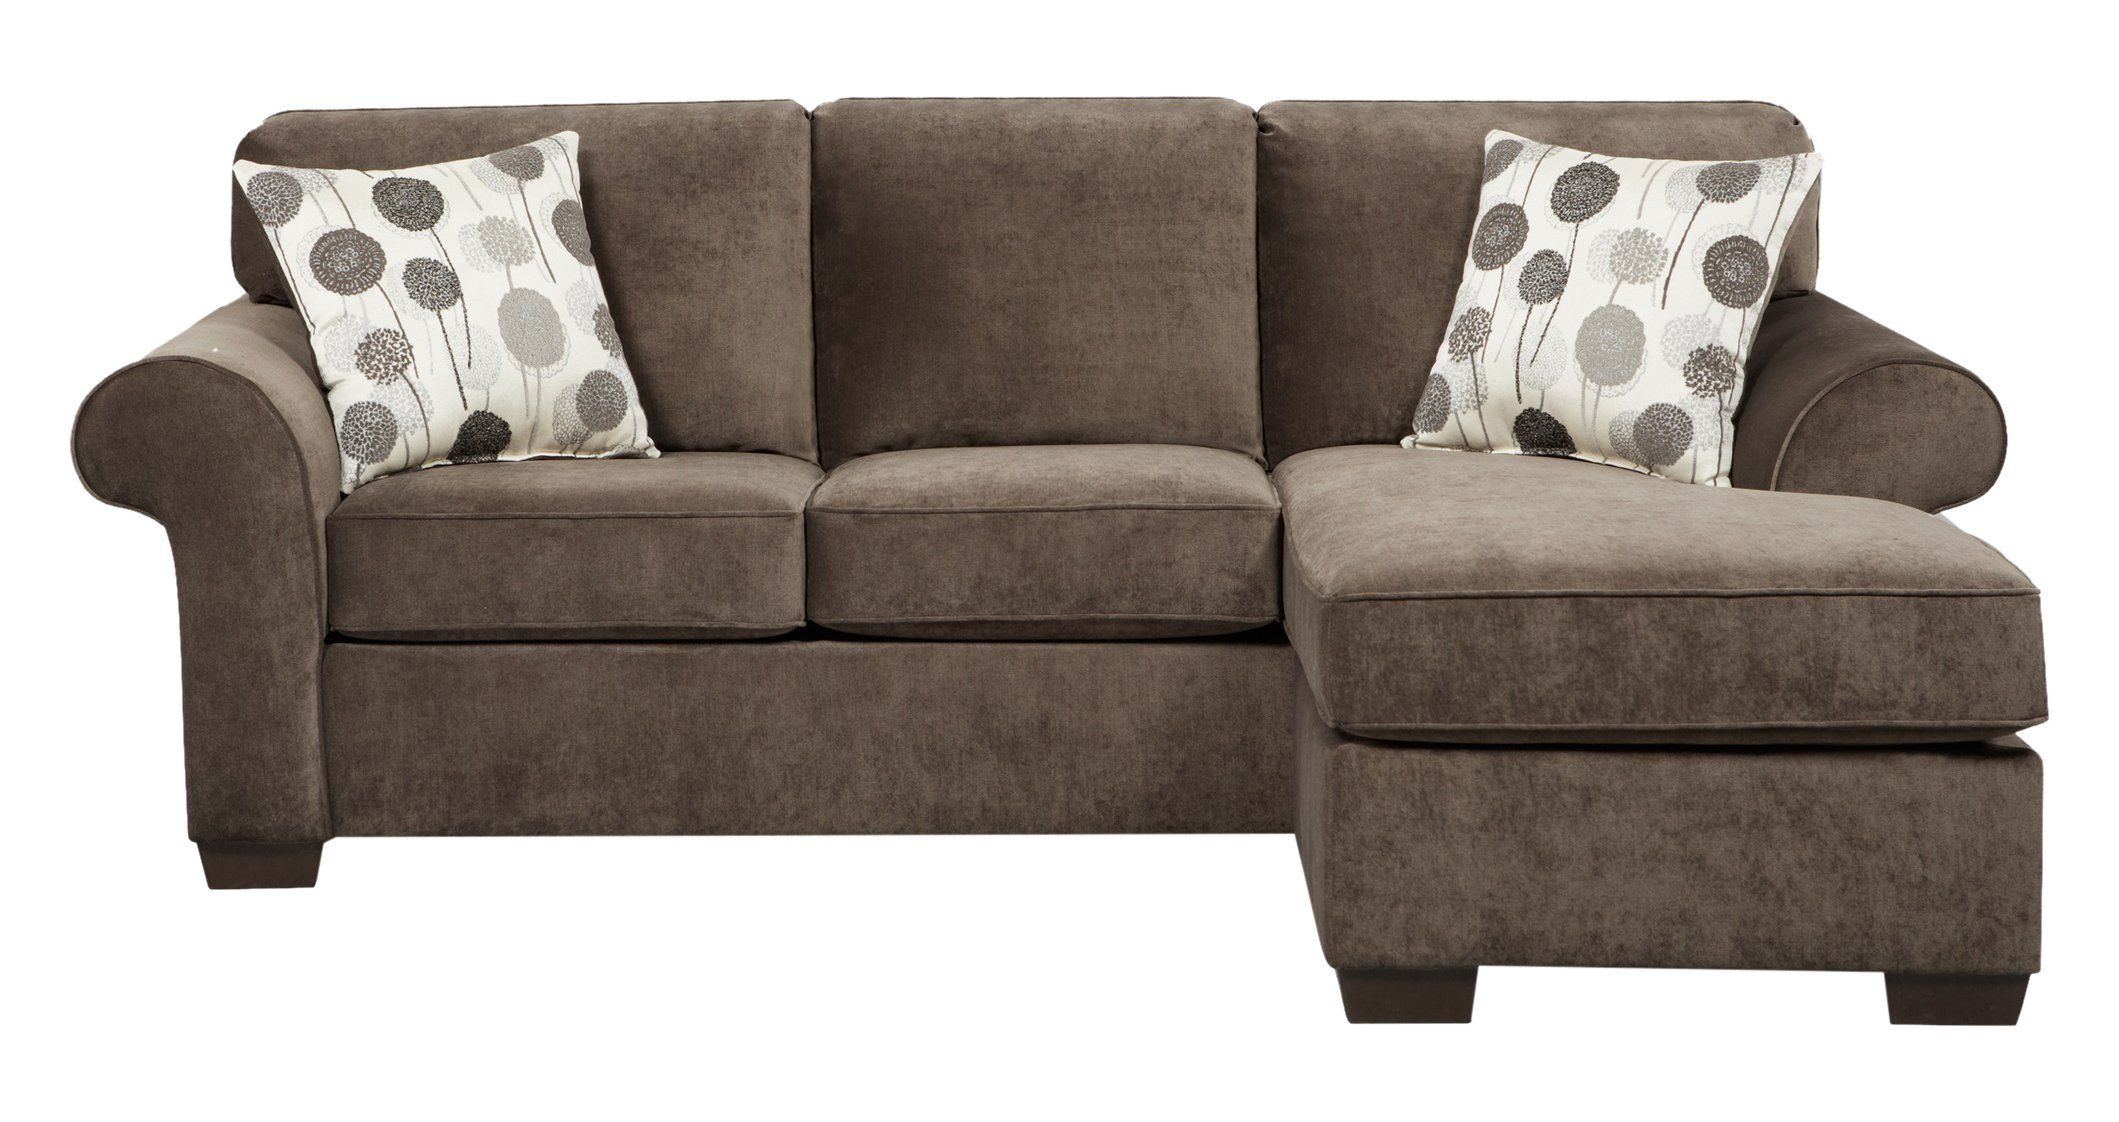 Roundhill Furniture Fabric Sectional Sofa With 2 Pillows Elizabeth Ash Dimension 92 X 67 38h High Quality Wood Frame